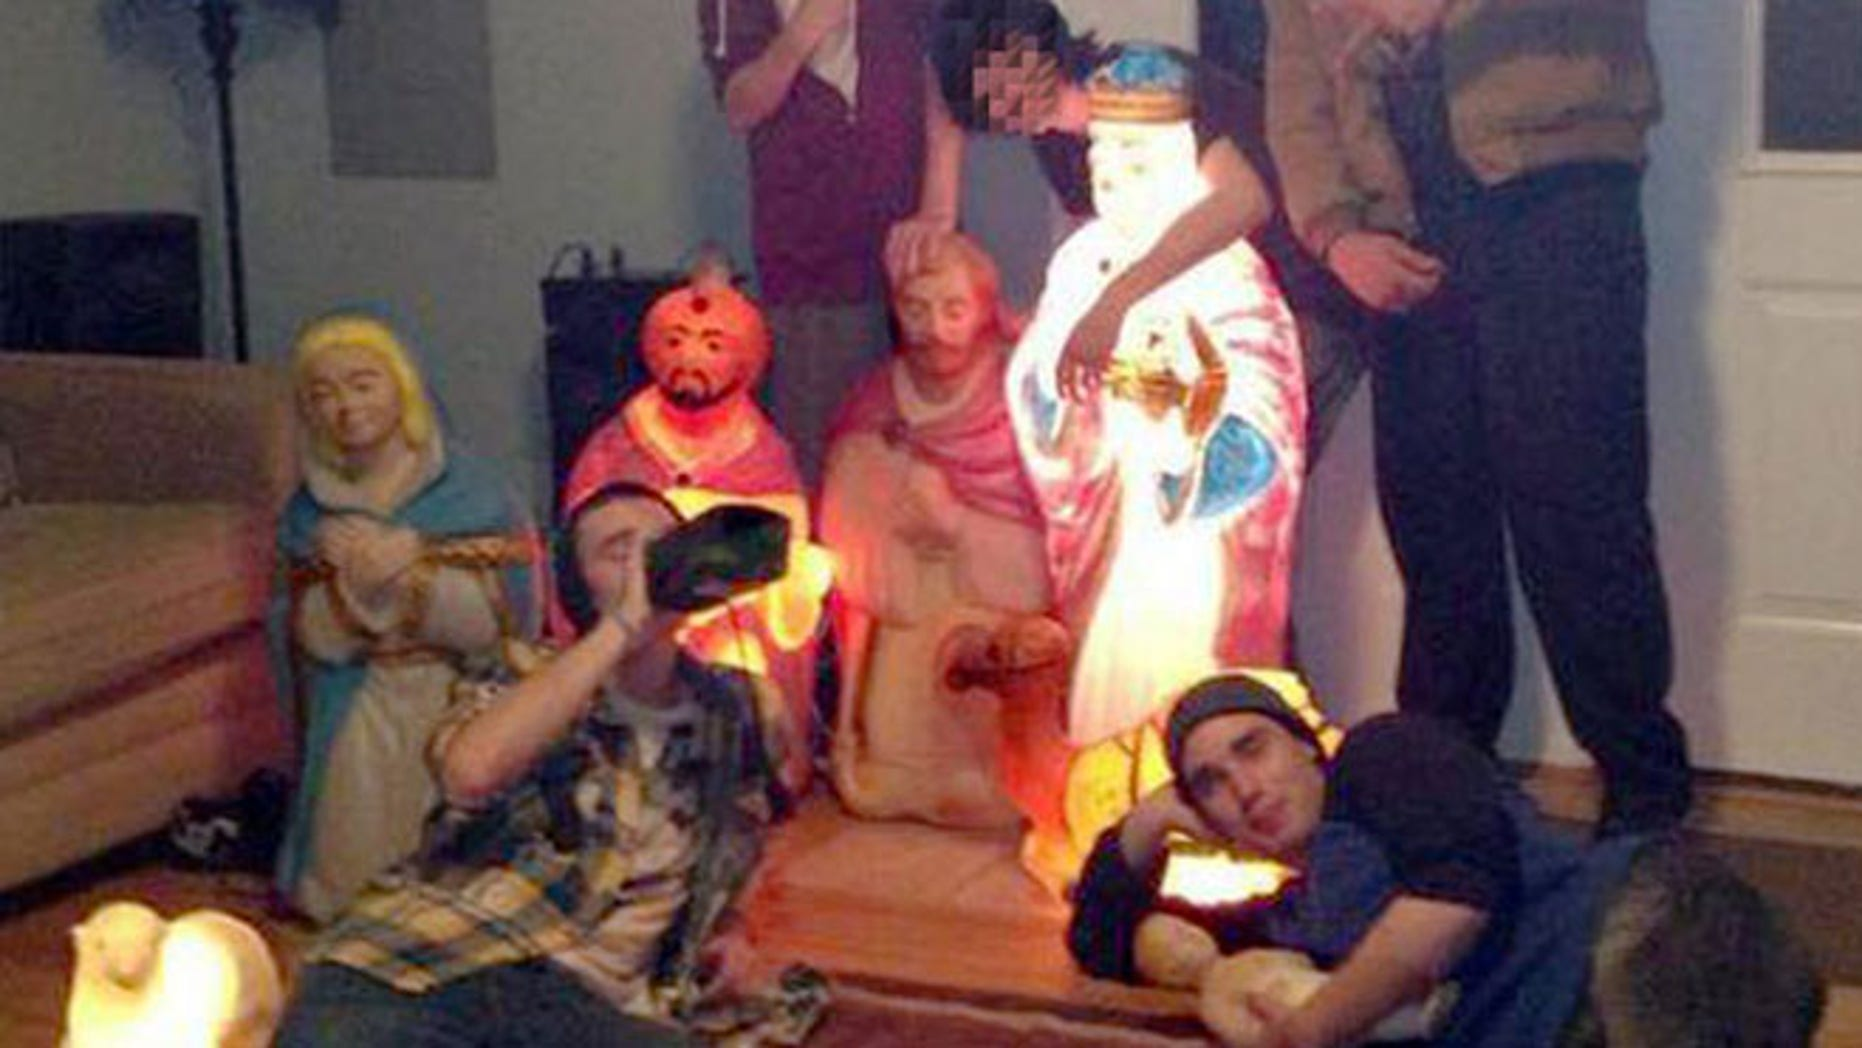 This undated photo shows the nativity scene and the teens charged with stealing it.